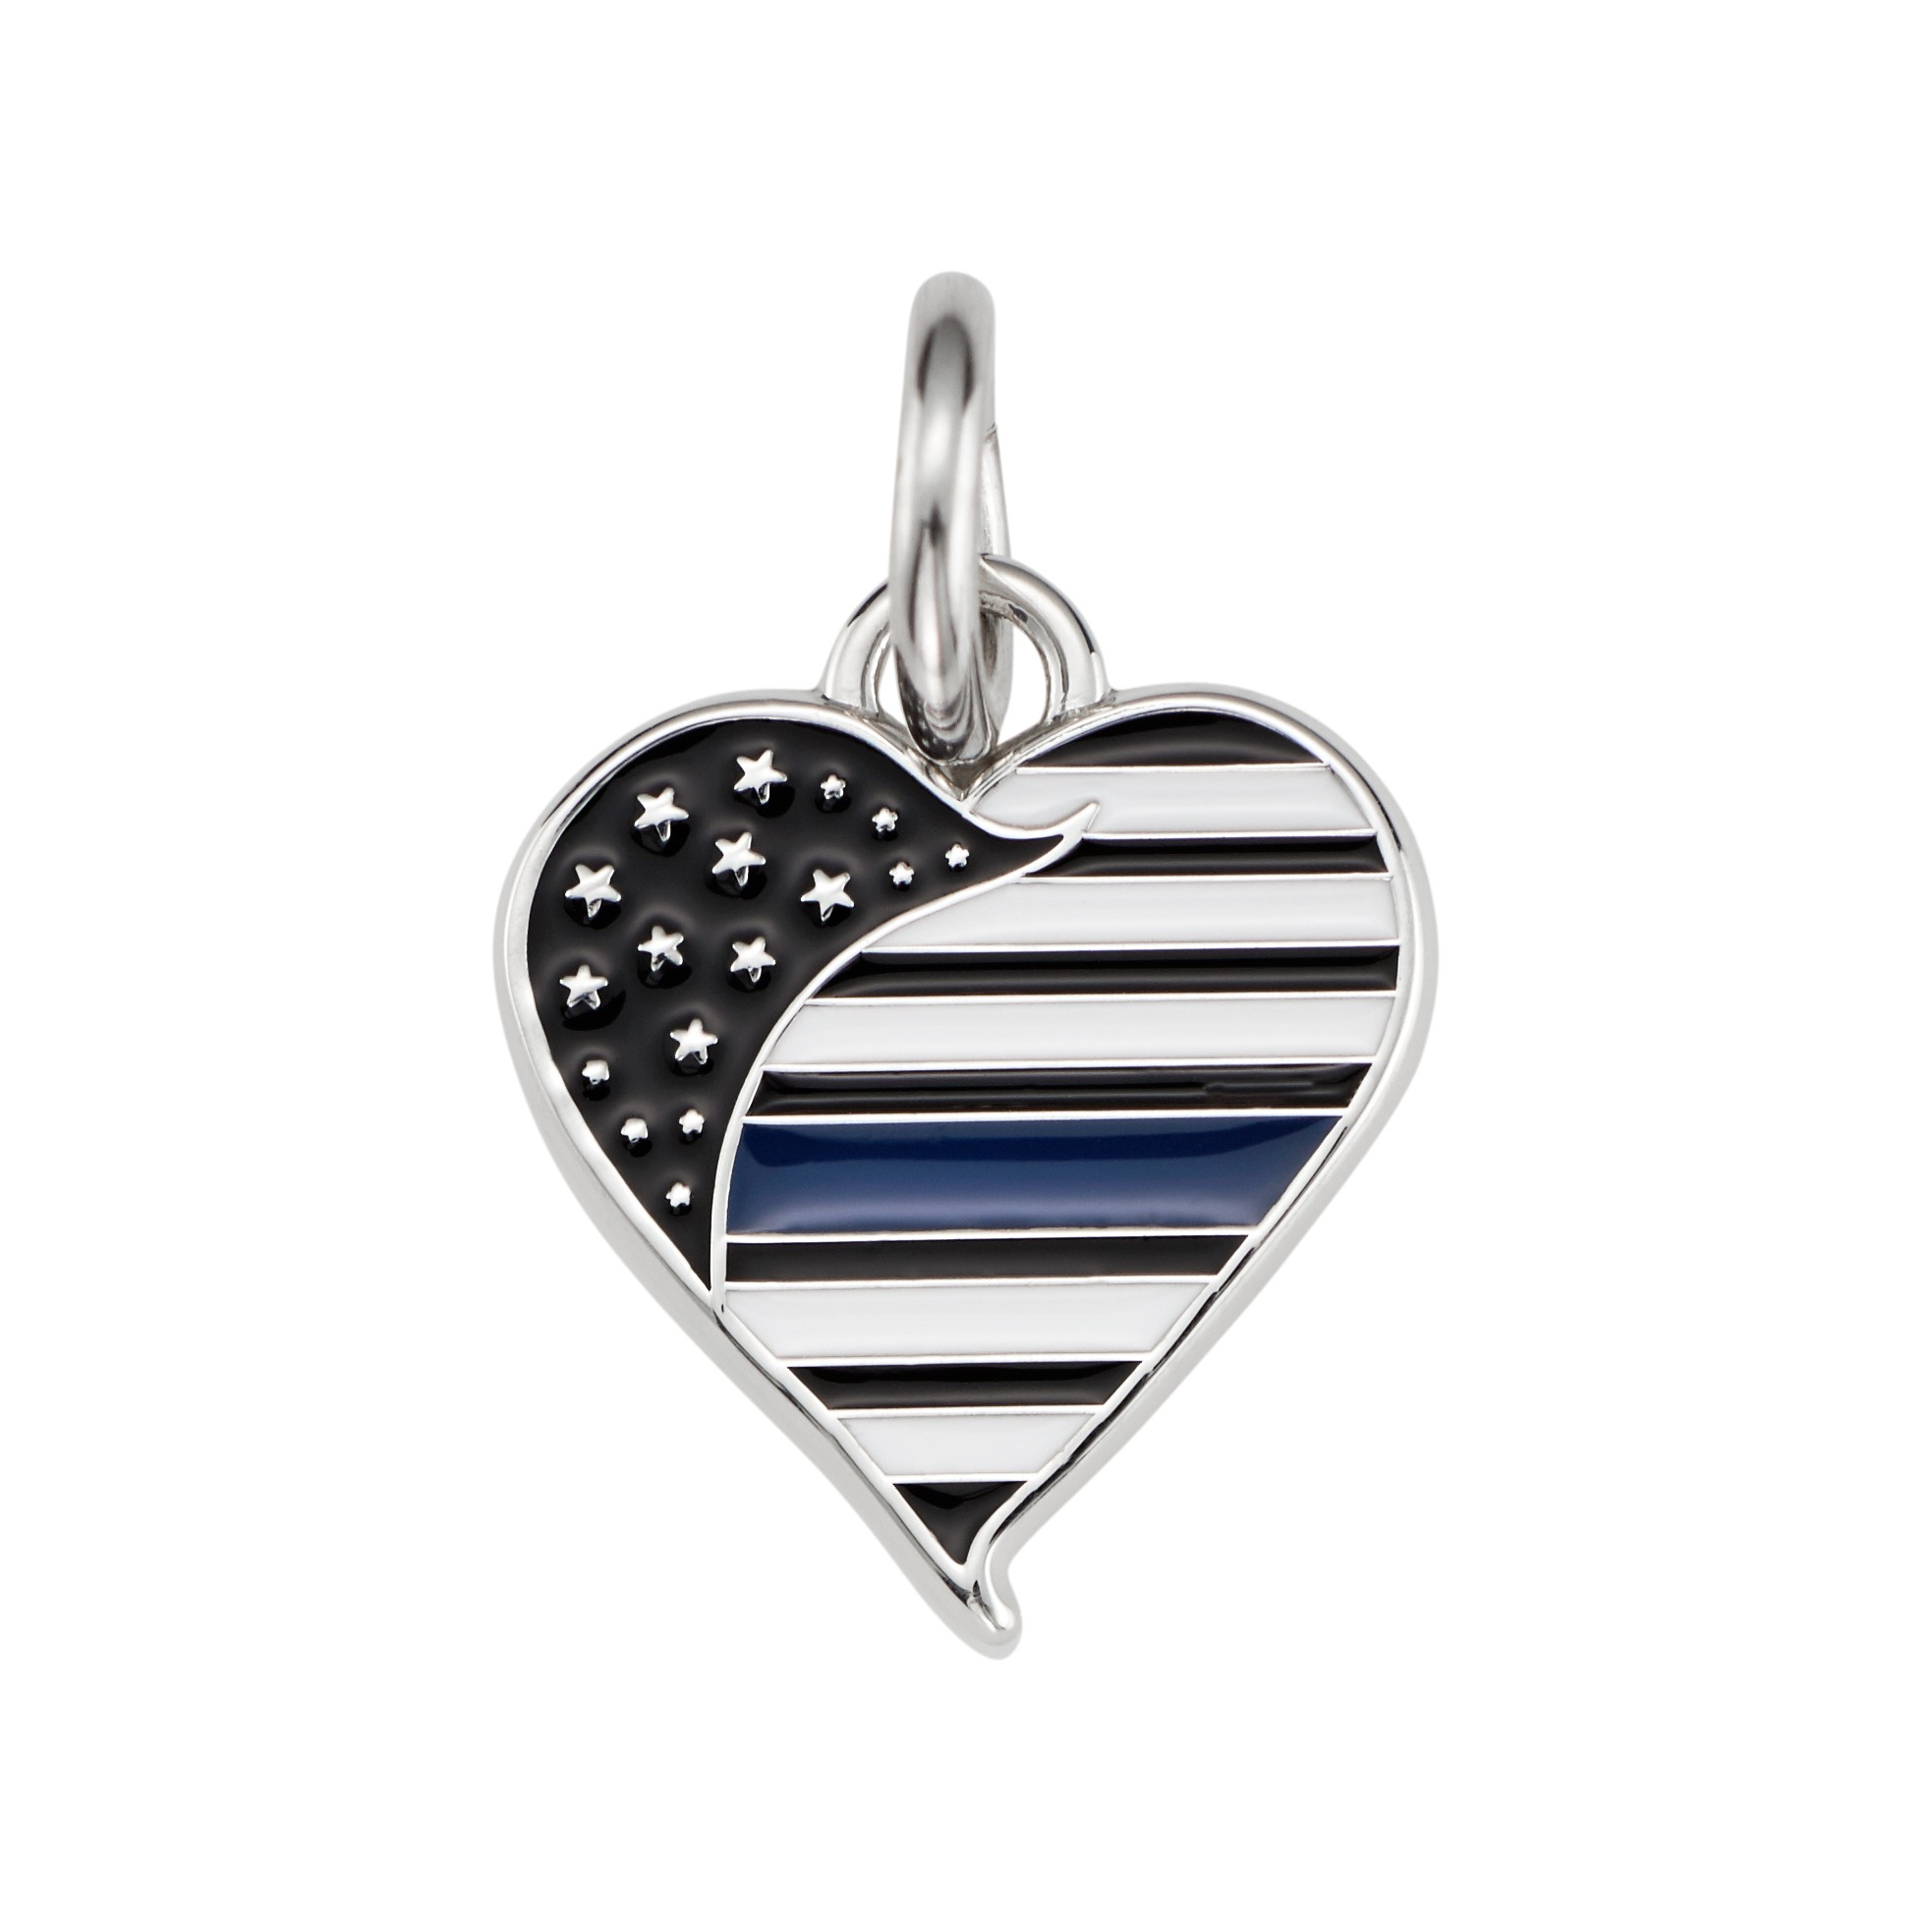 responders firefighter police page first collections love ems badge necklace shineon pendant